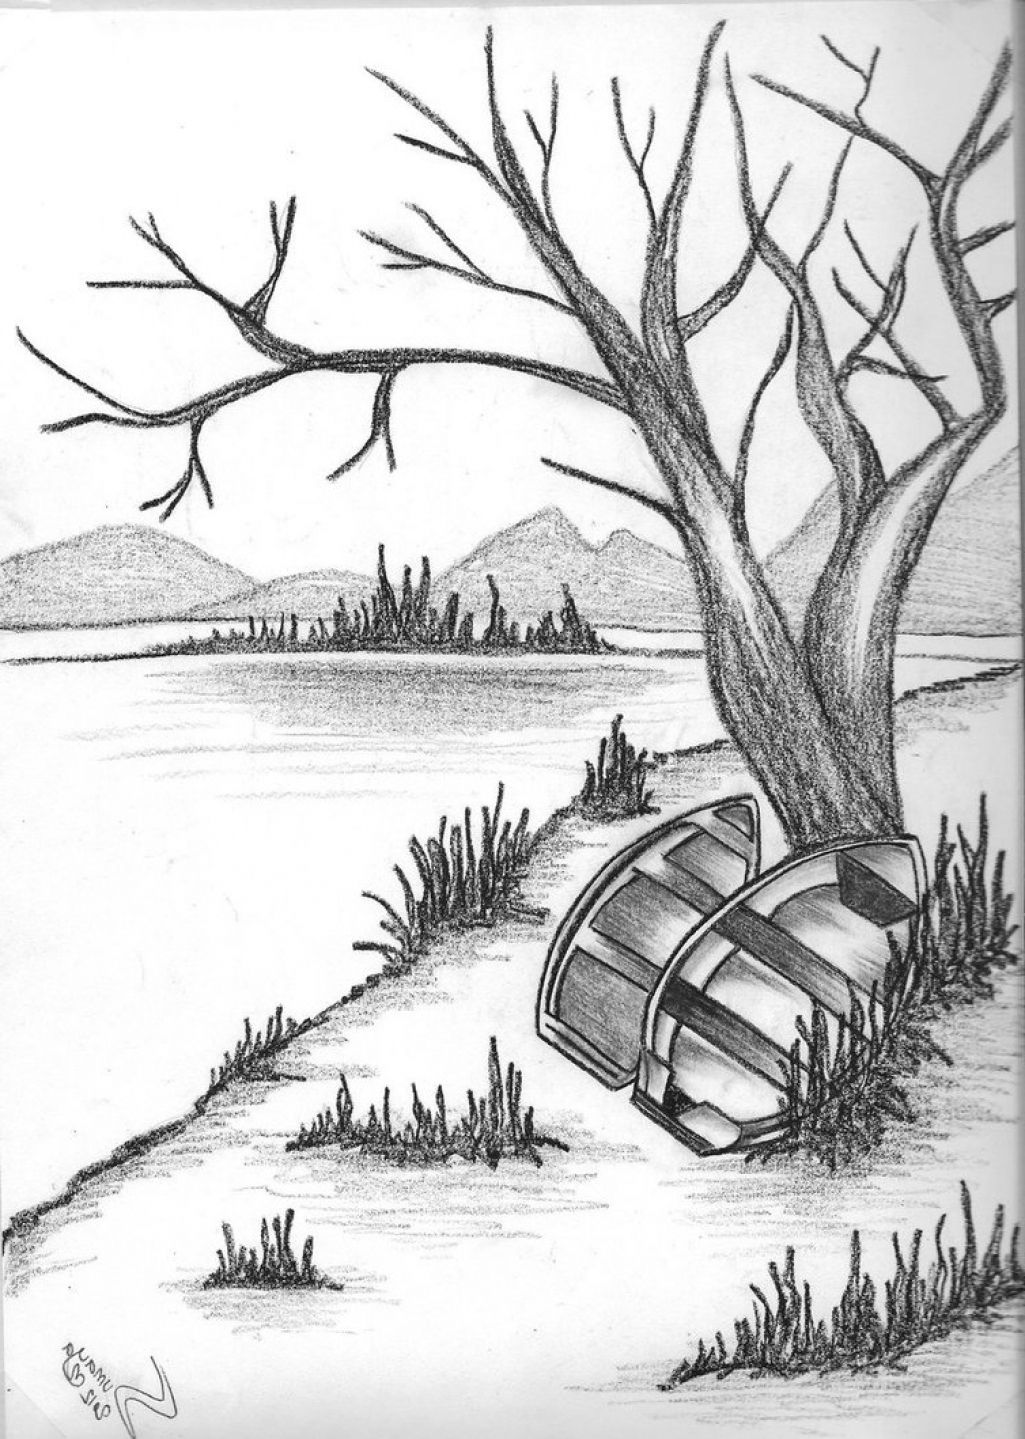 Best nature pencil sketches in the world great drawing